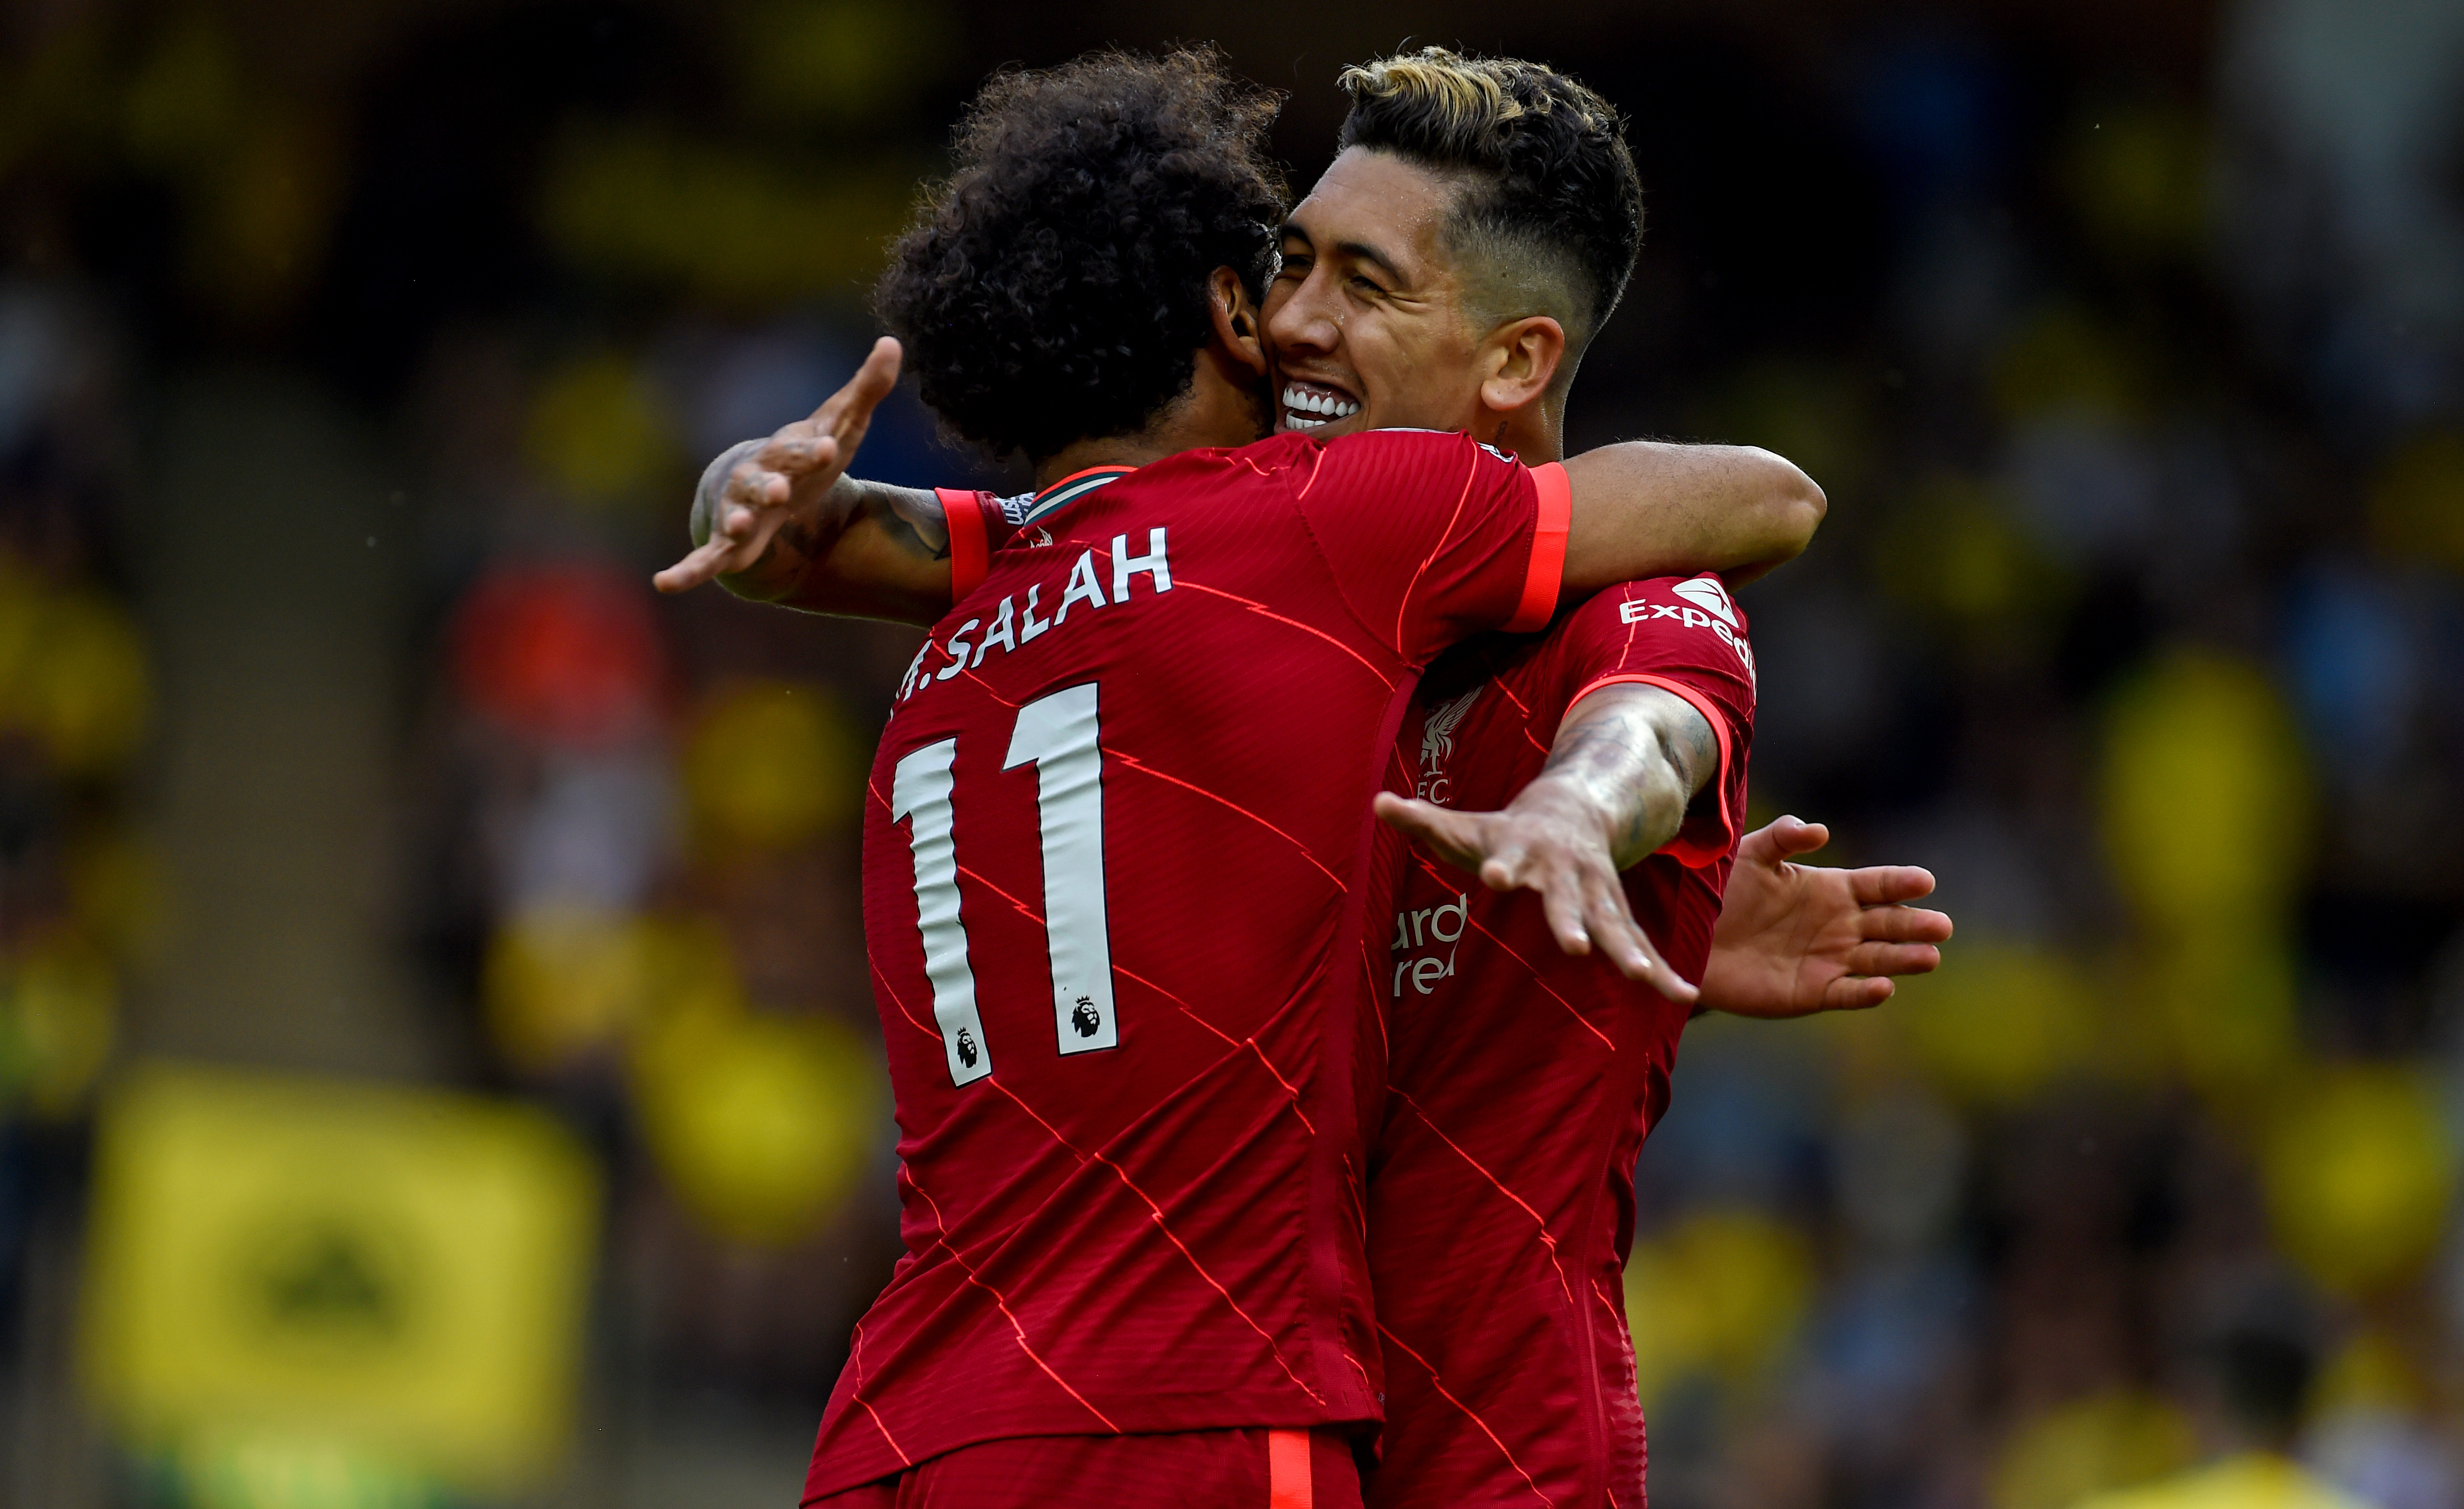 Roberto Firmino celebrates after scoring the second goal with Mohamed Salah of Liverpool during the Premier League match between Norwich City and Liverpool at Carrow Road on August 14, 2021 in Norwich, England.